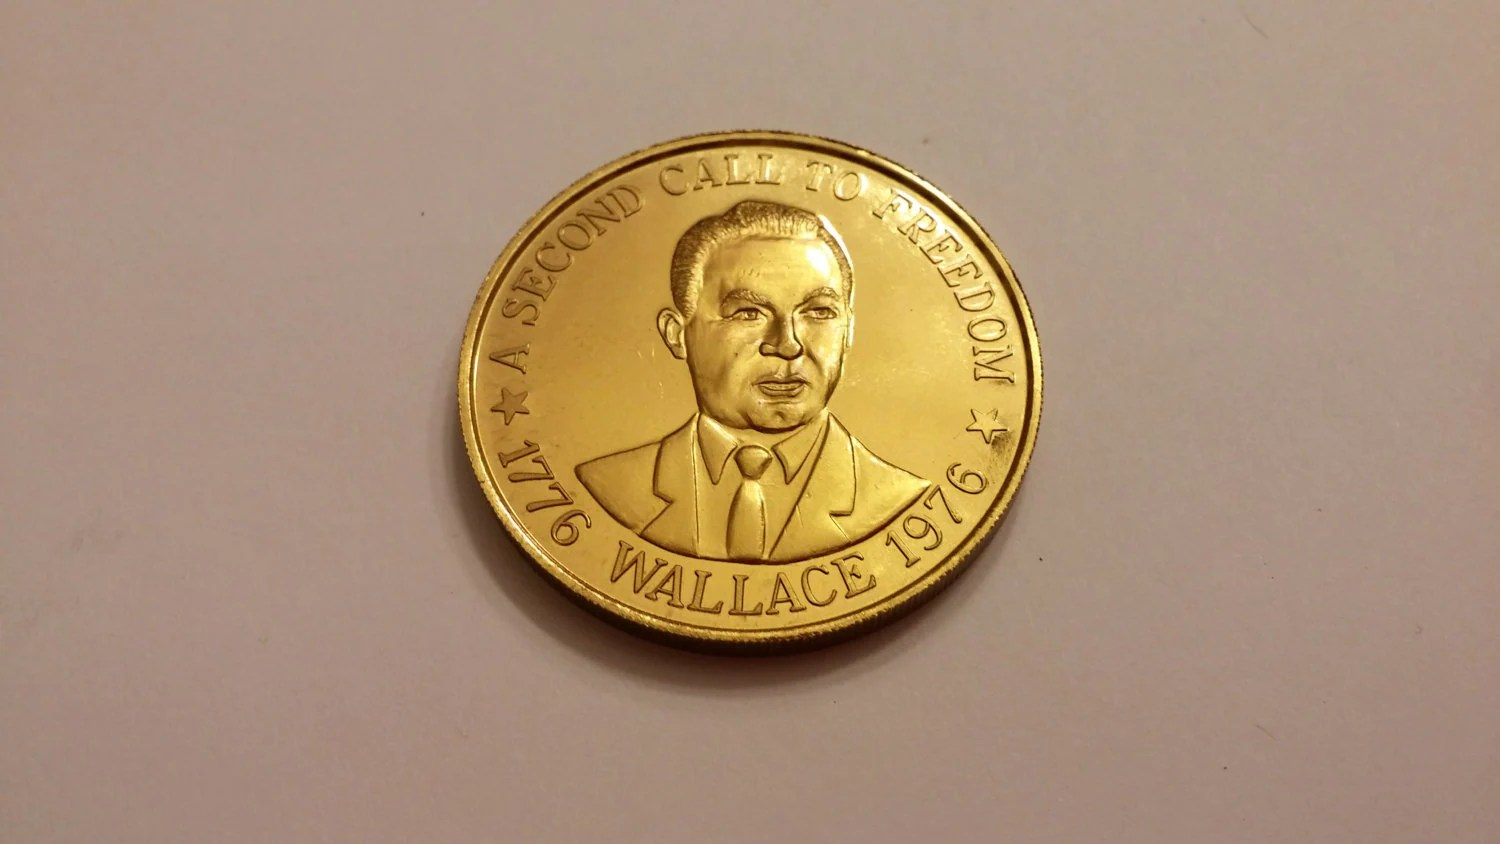 Hat Stand Freedom George Wallace Second Call To Freedom 1976 Campaign Coin